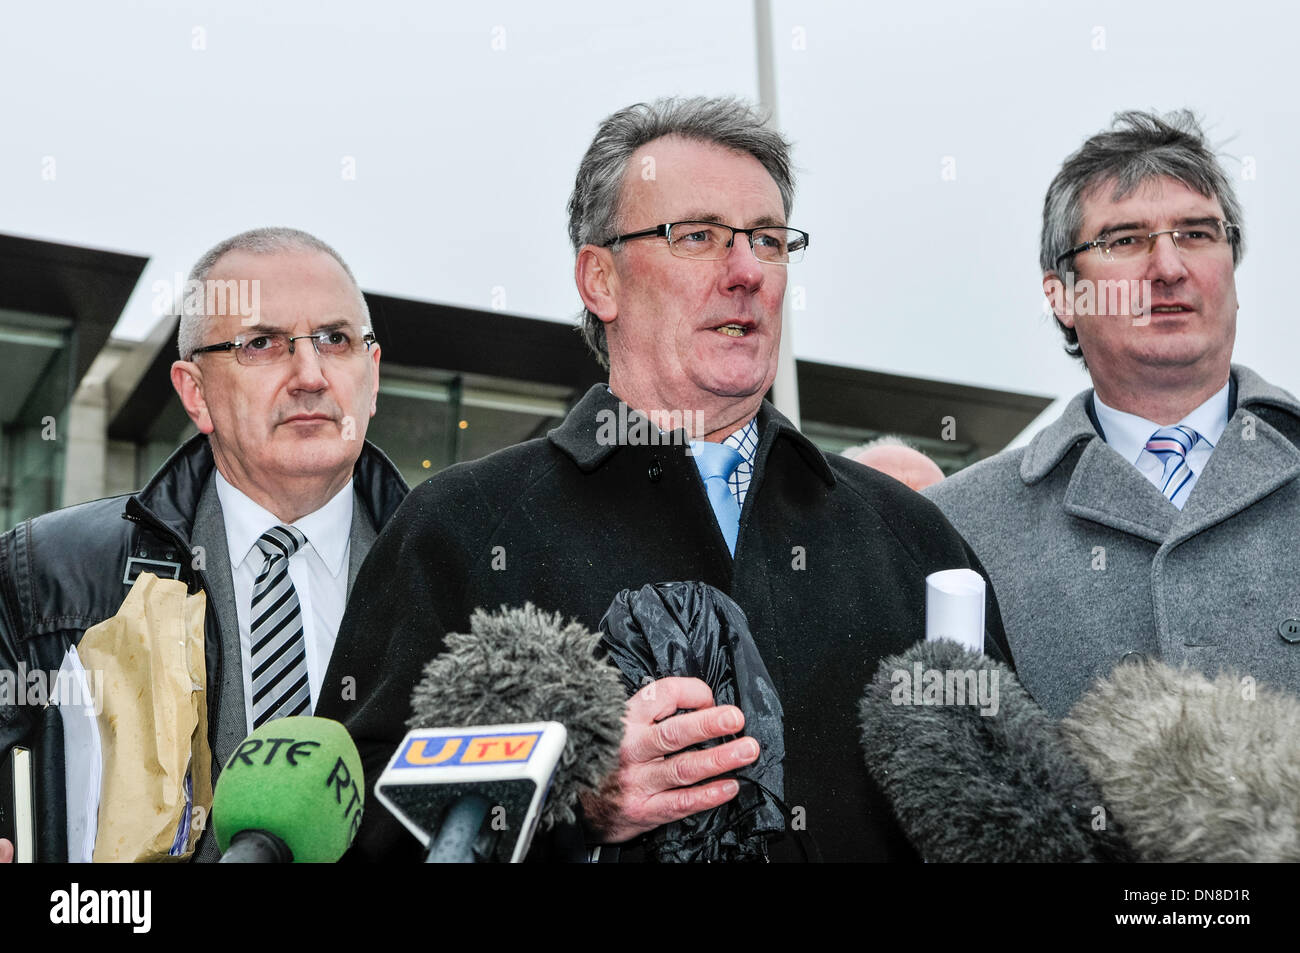 Belfast, Northern Ireland. 20 Dec 2013 - The UUP delegation led by Mike Nesbitt  emerges from the Haass talks over Stock Photo